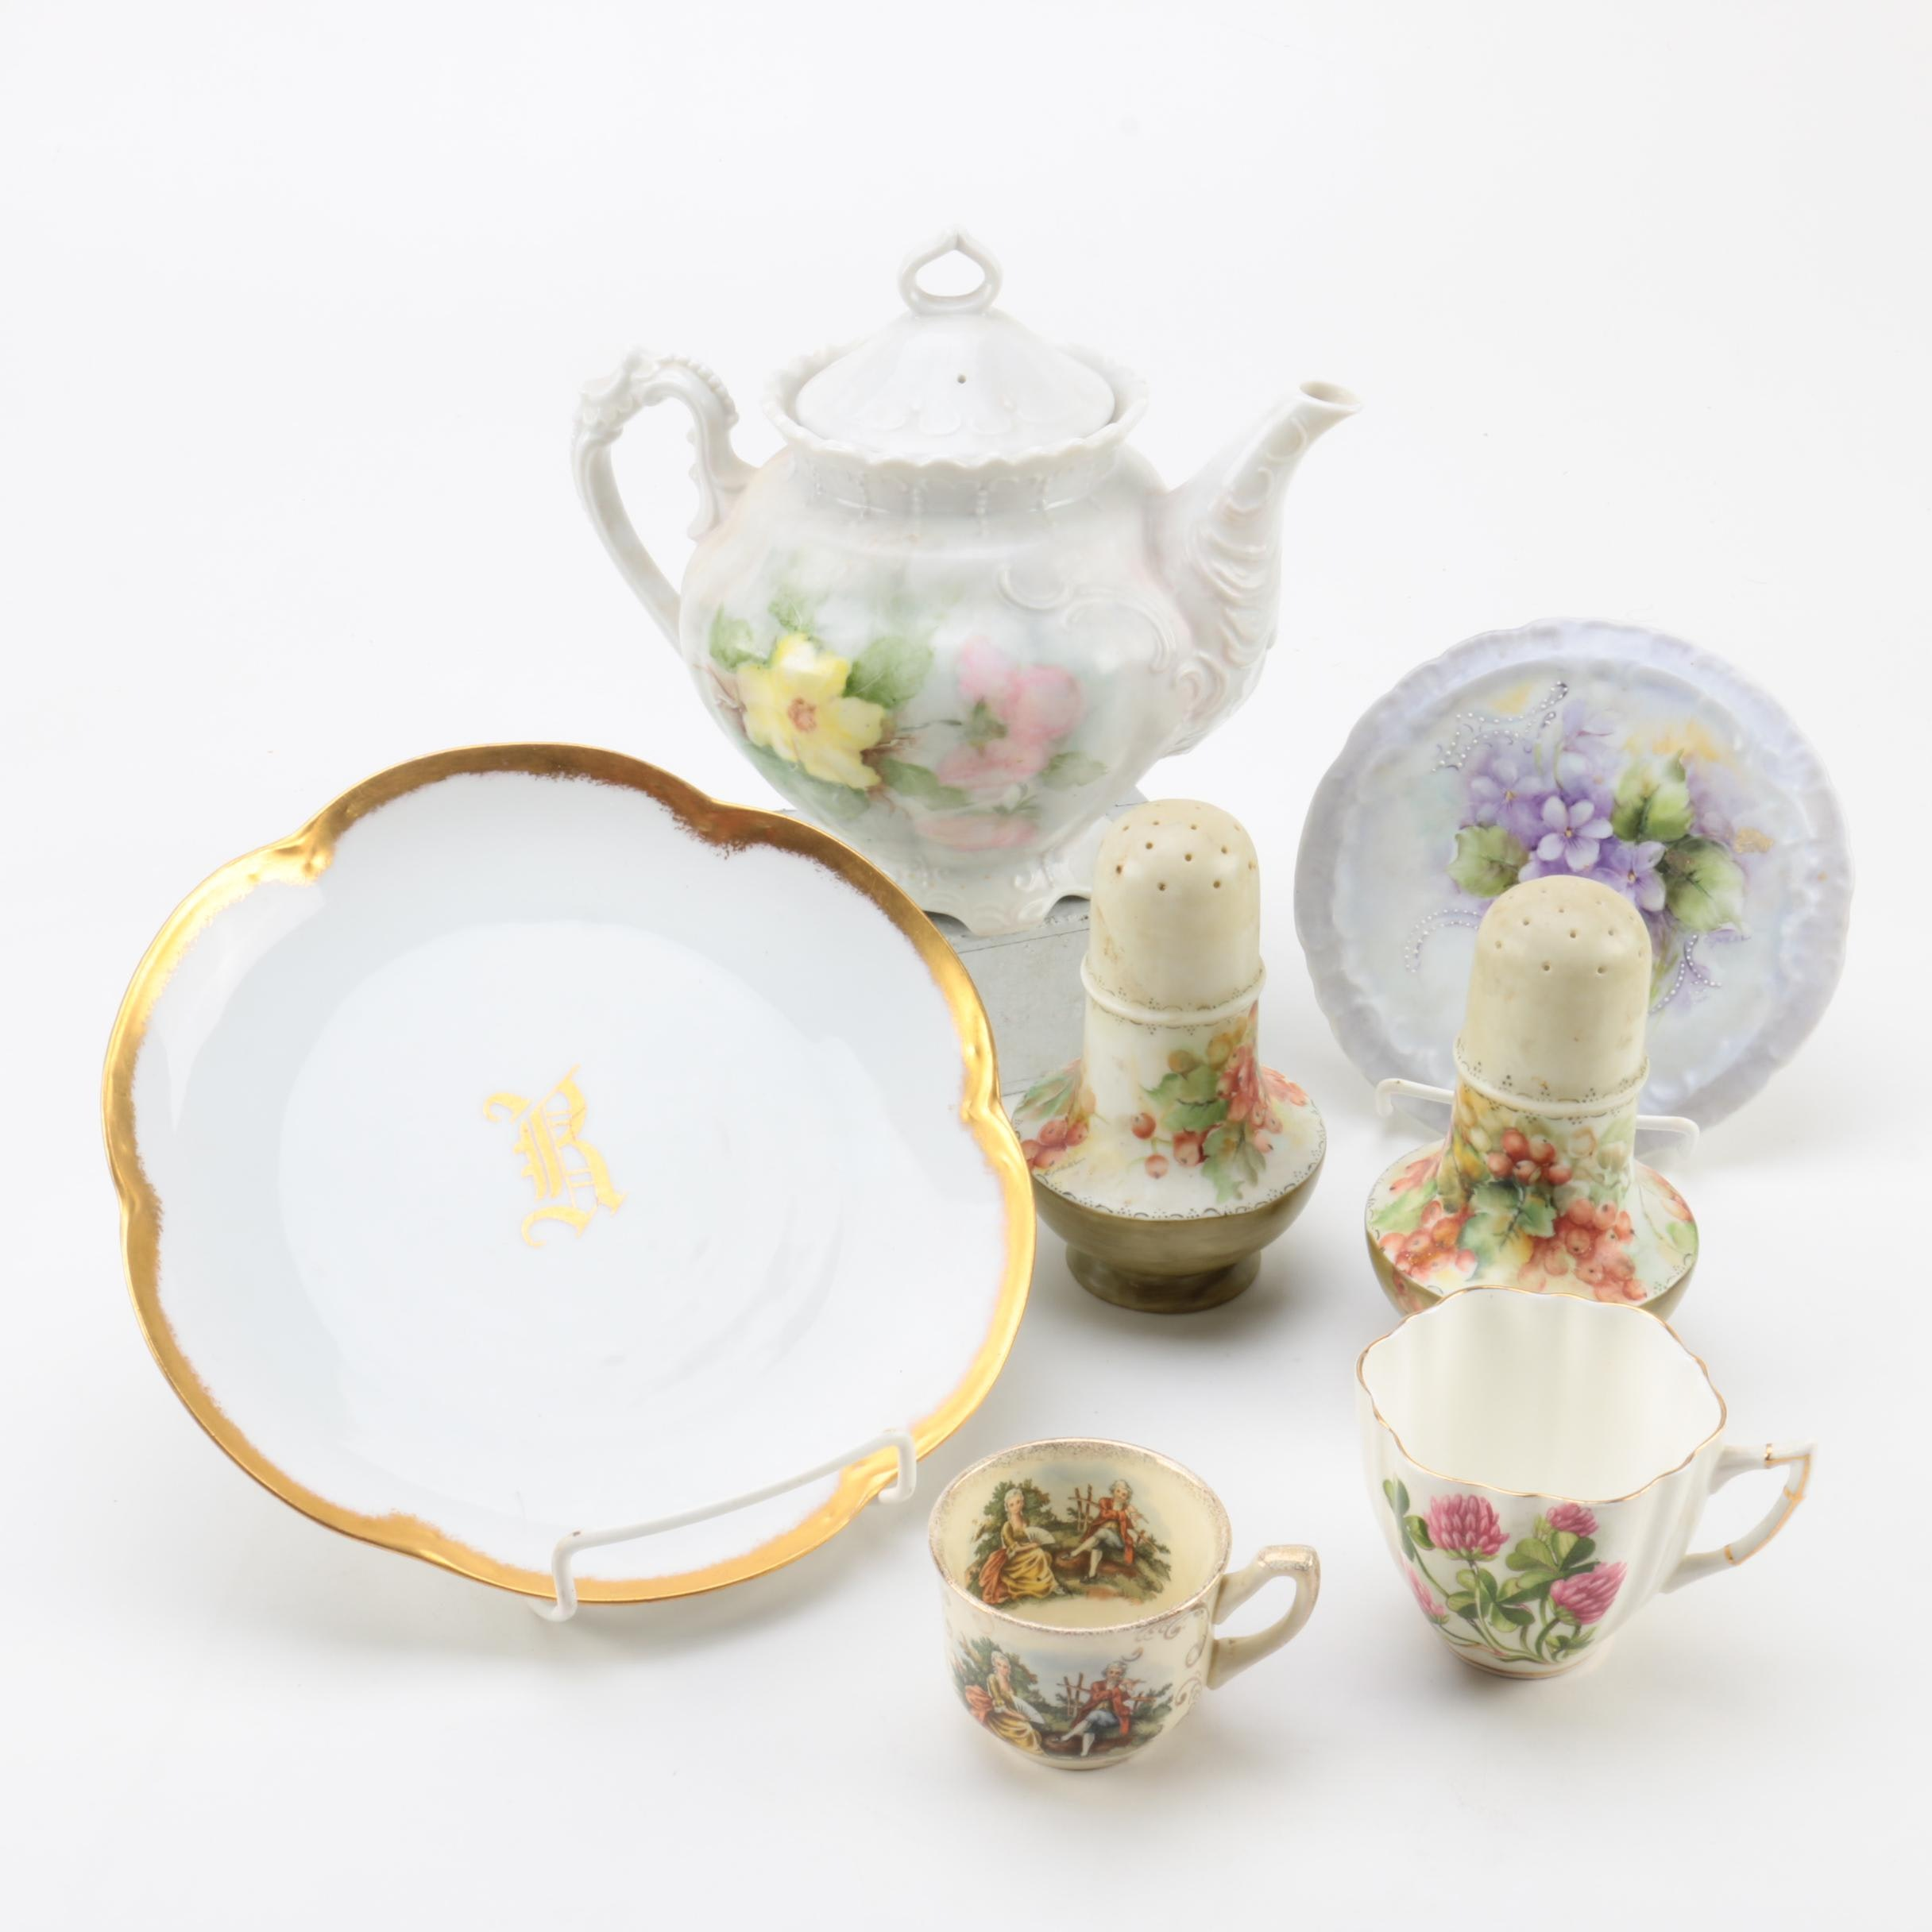 Vintage Hand Painted Teapot and Tableware